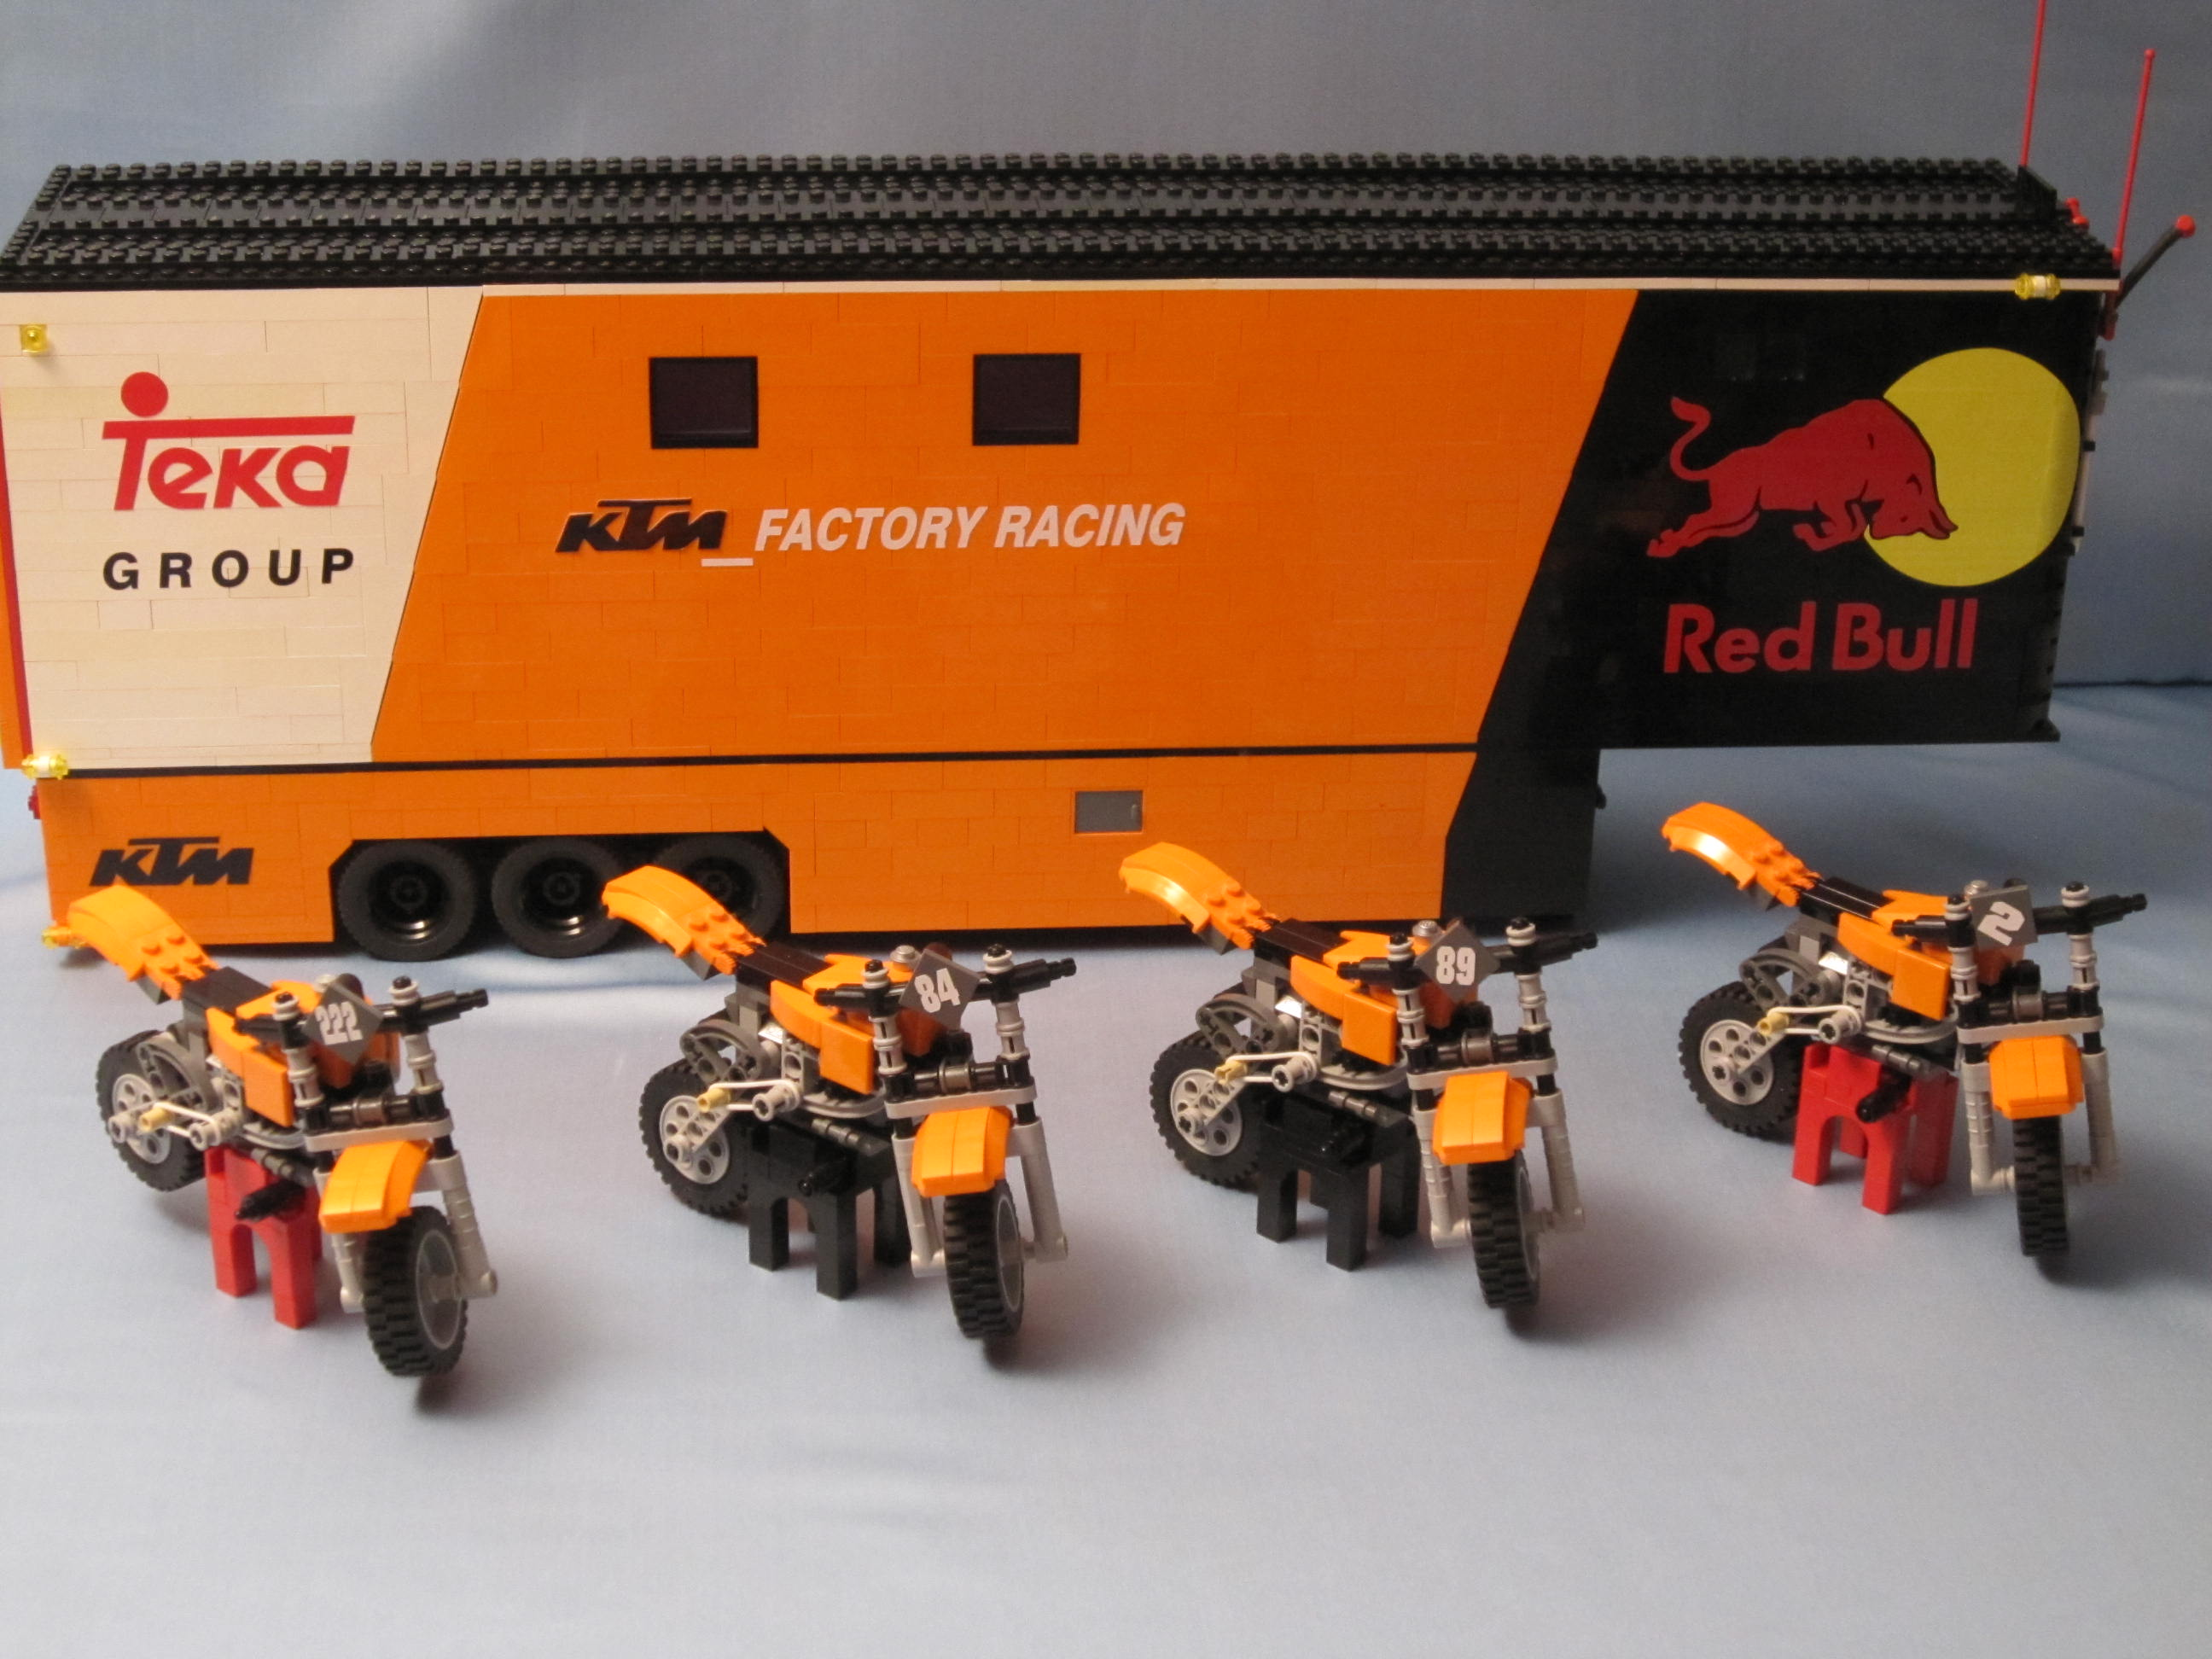 tribute_ktm_factory_racing_027.jpg